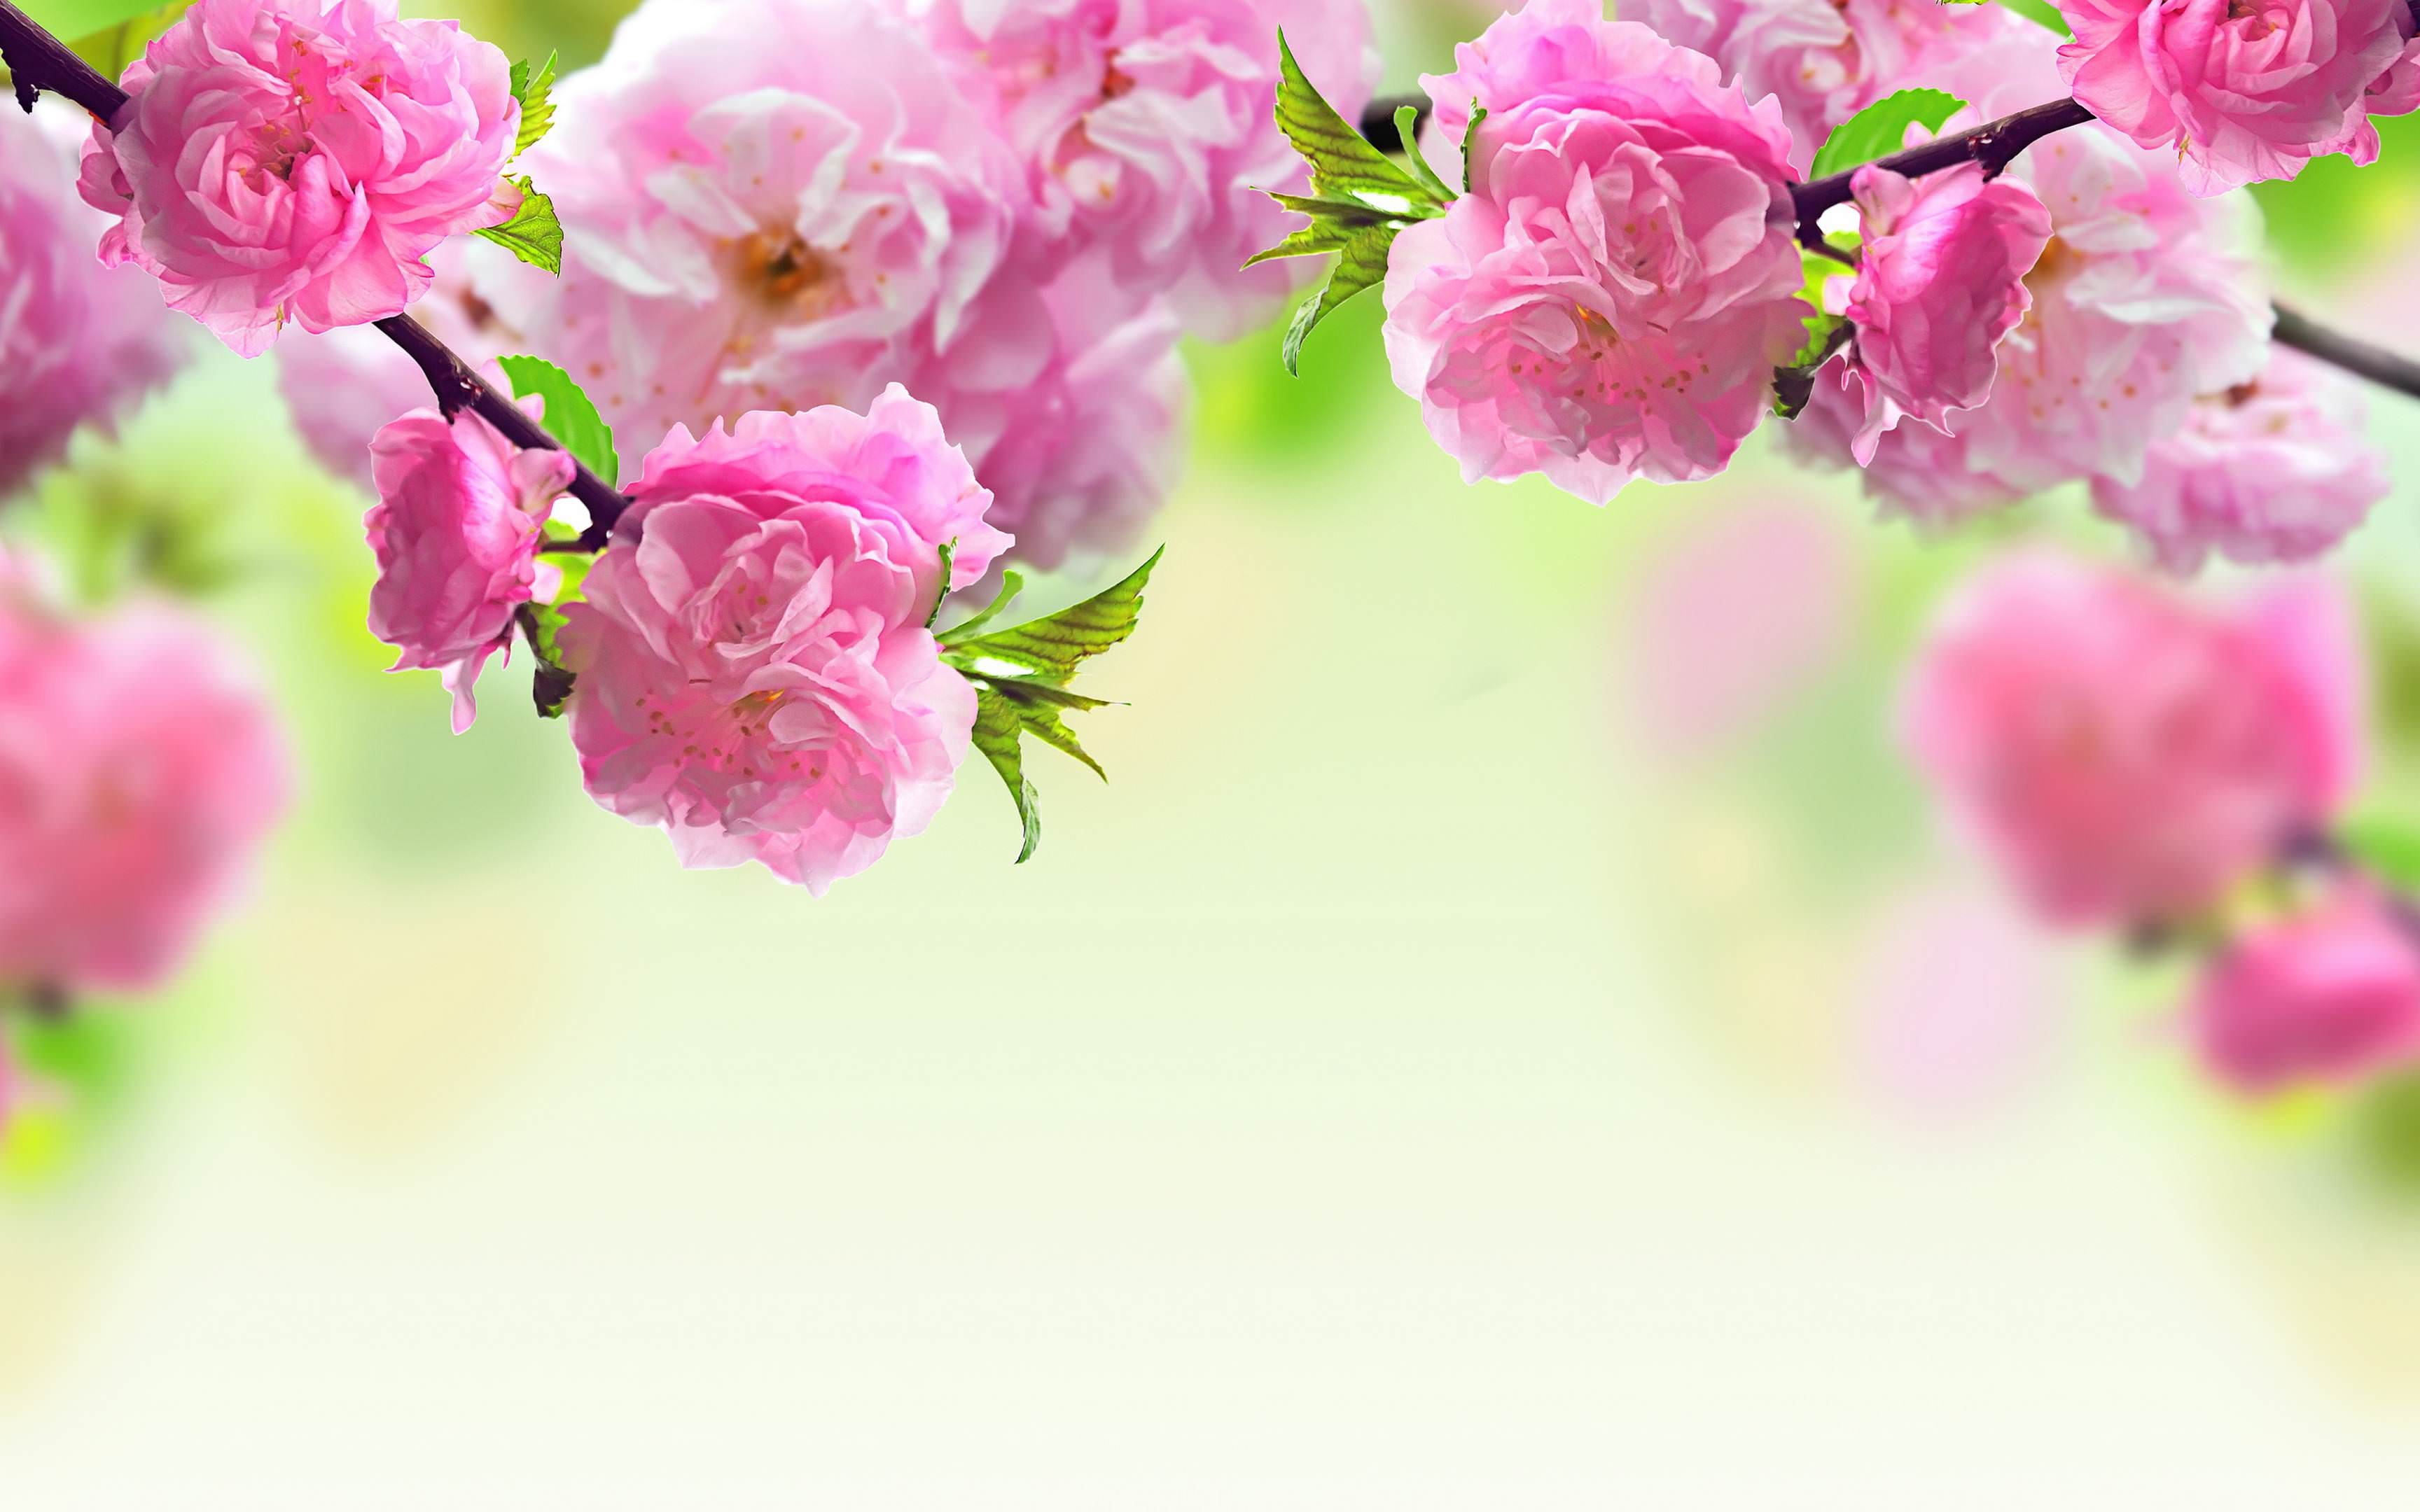 Cute Pink Rose Flower Background